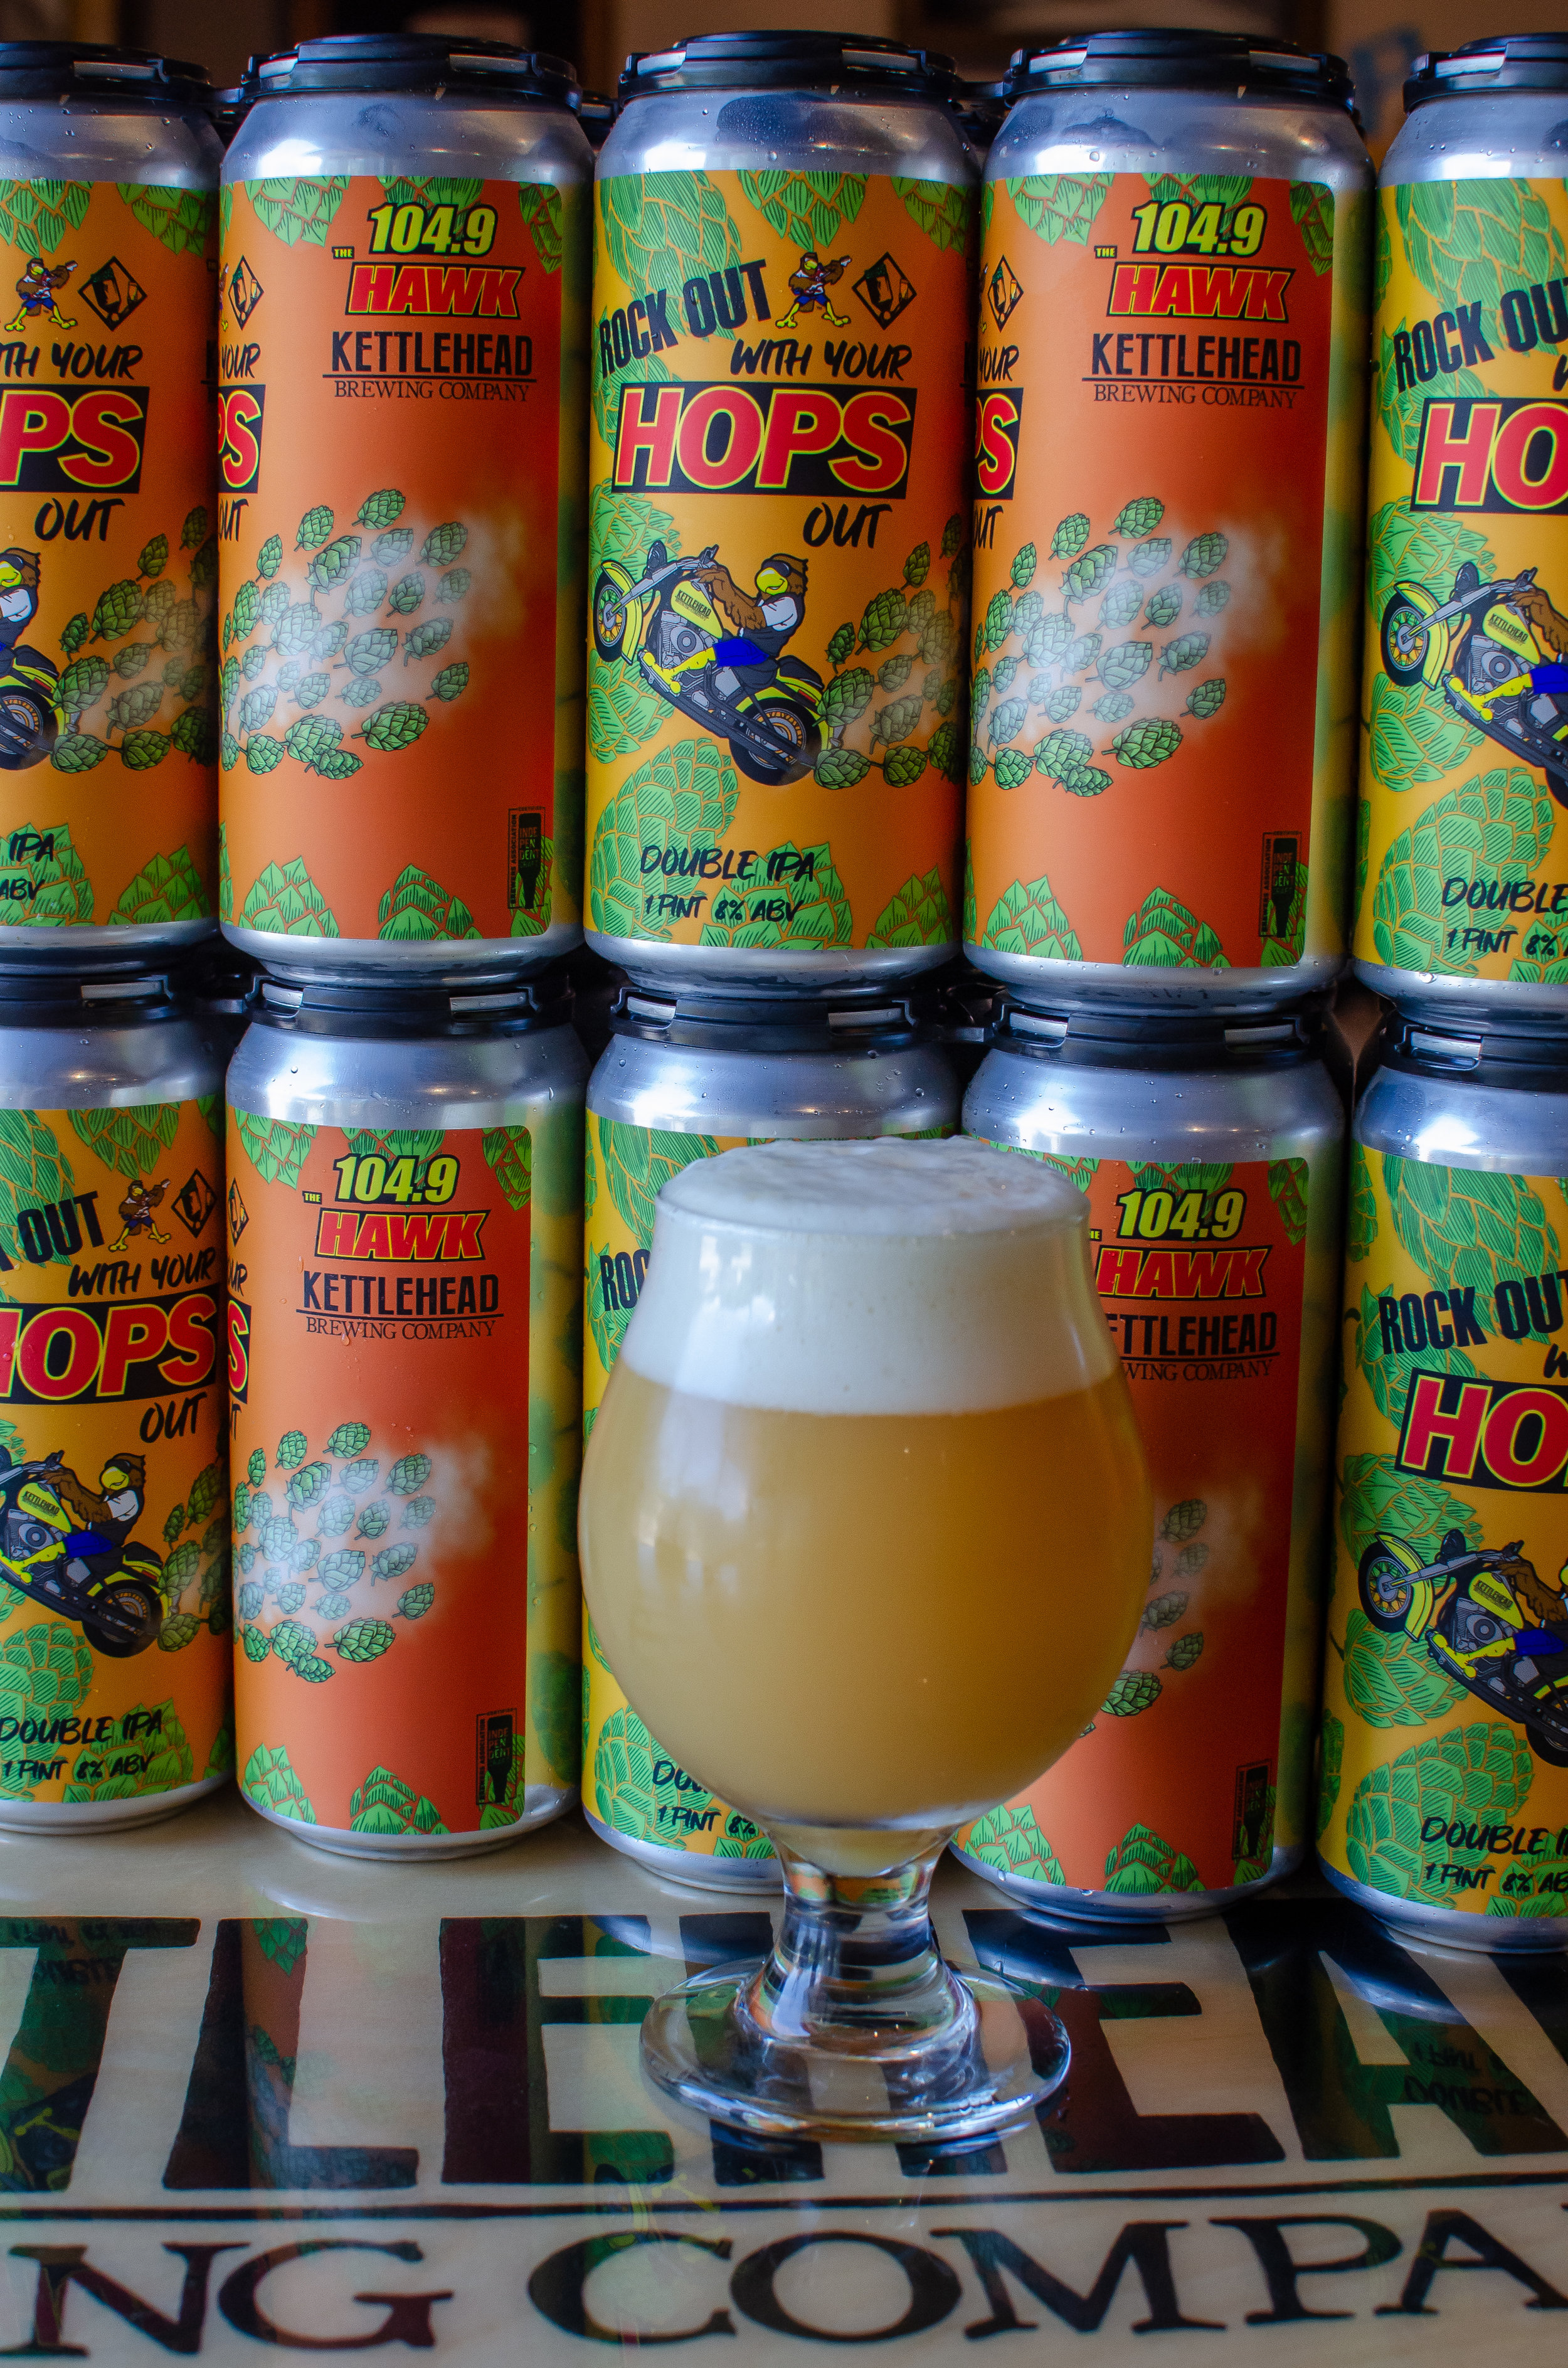 "Rock Out With Your Hops Out, DIPA, 8% - To celebrate 96 years of Laconia Motorcycle Week Rally and 15 years of 104.9 THE HAWK as the official Radio Station of #bikeweek, we're releasing ""Rock Out With Your Hops Out"" dipa"